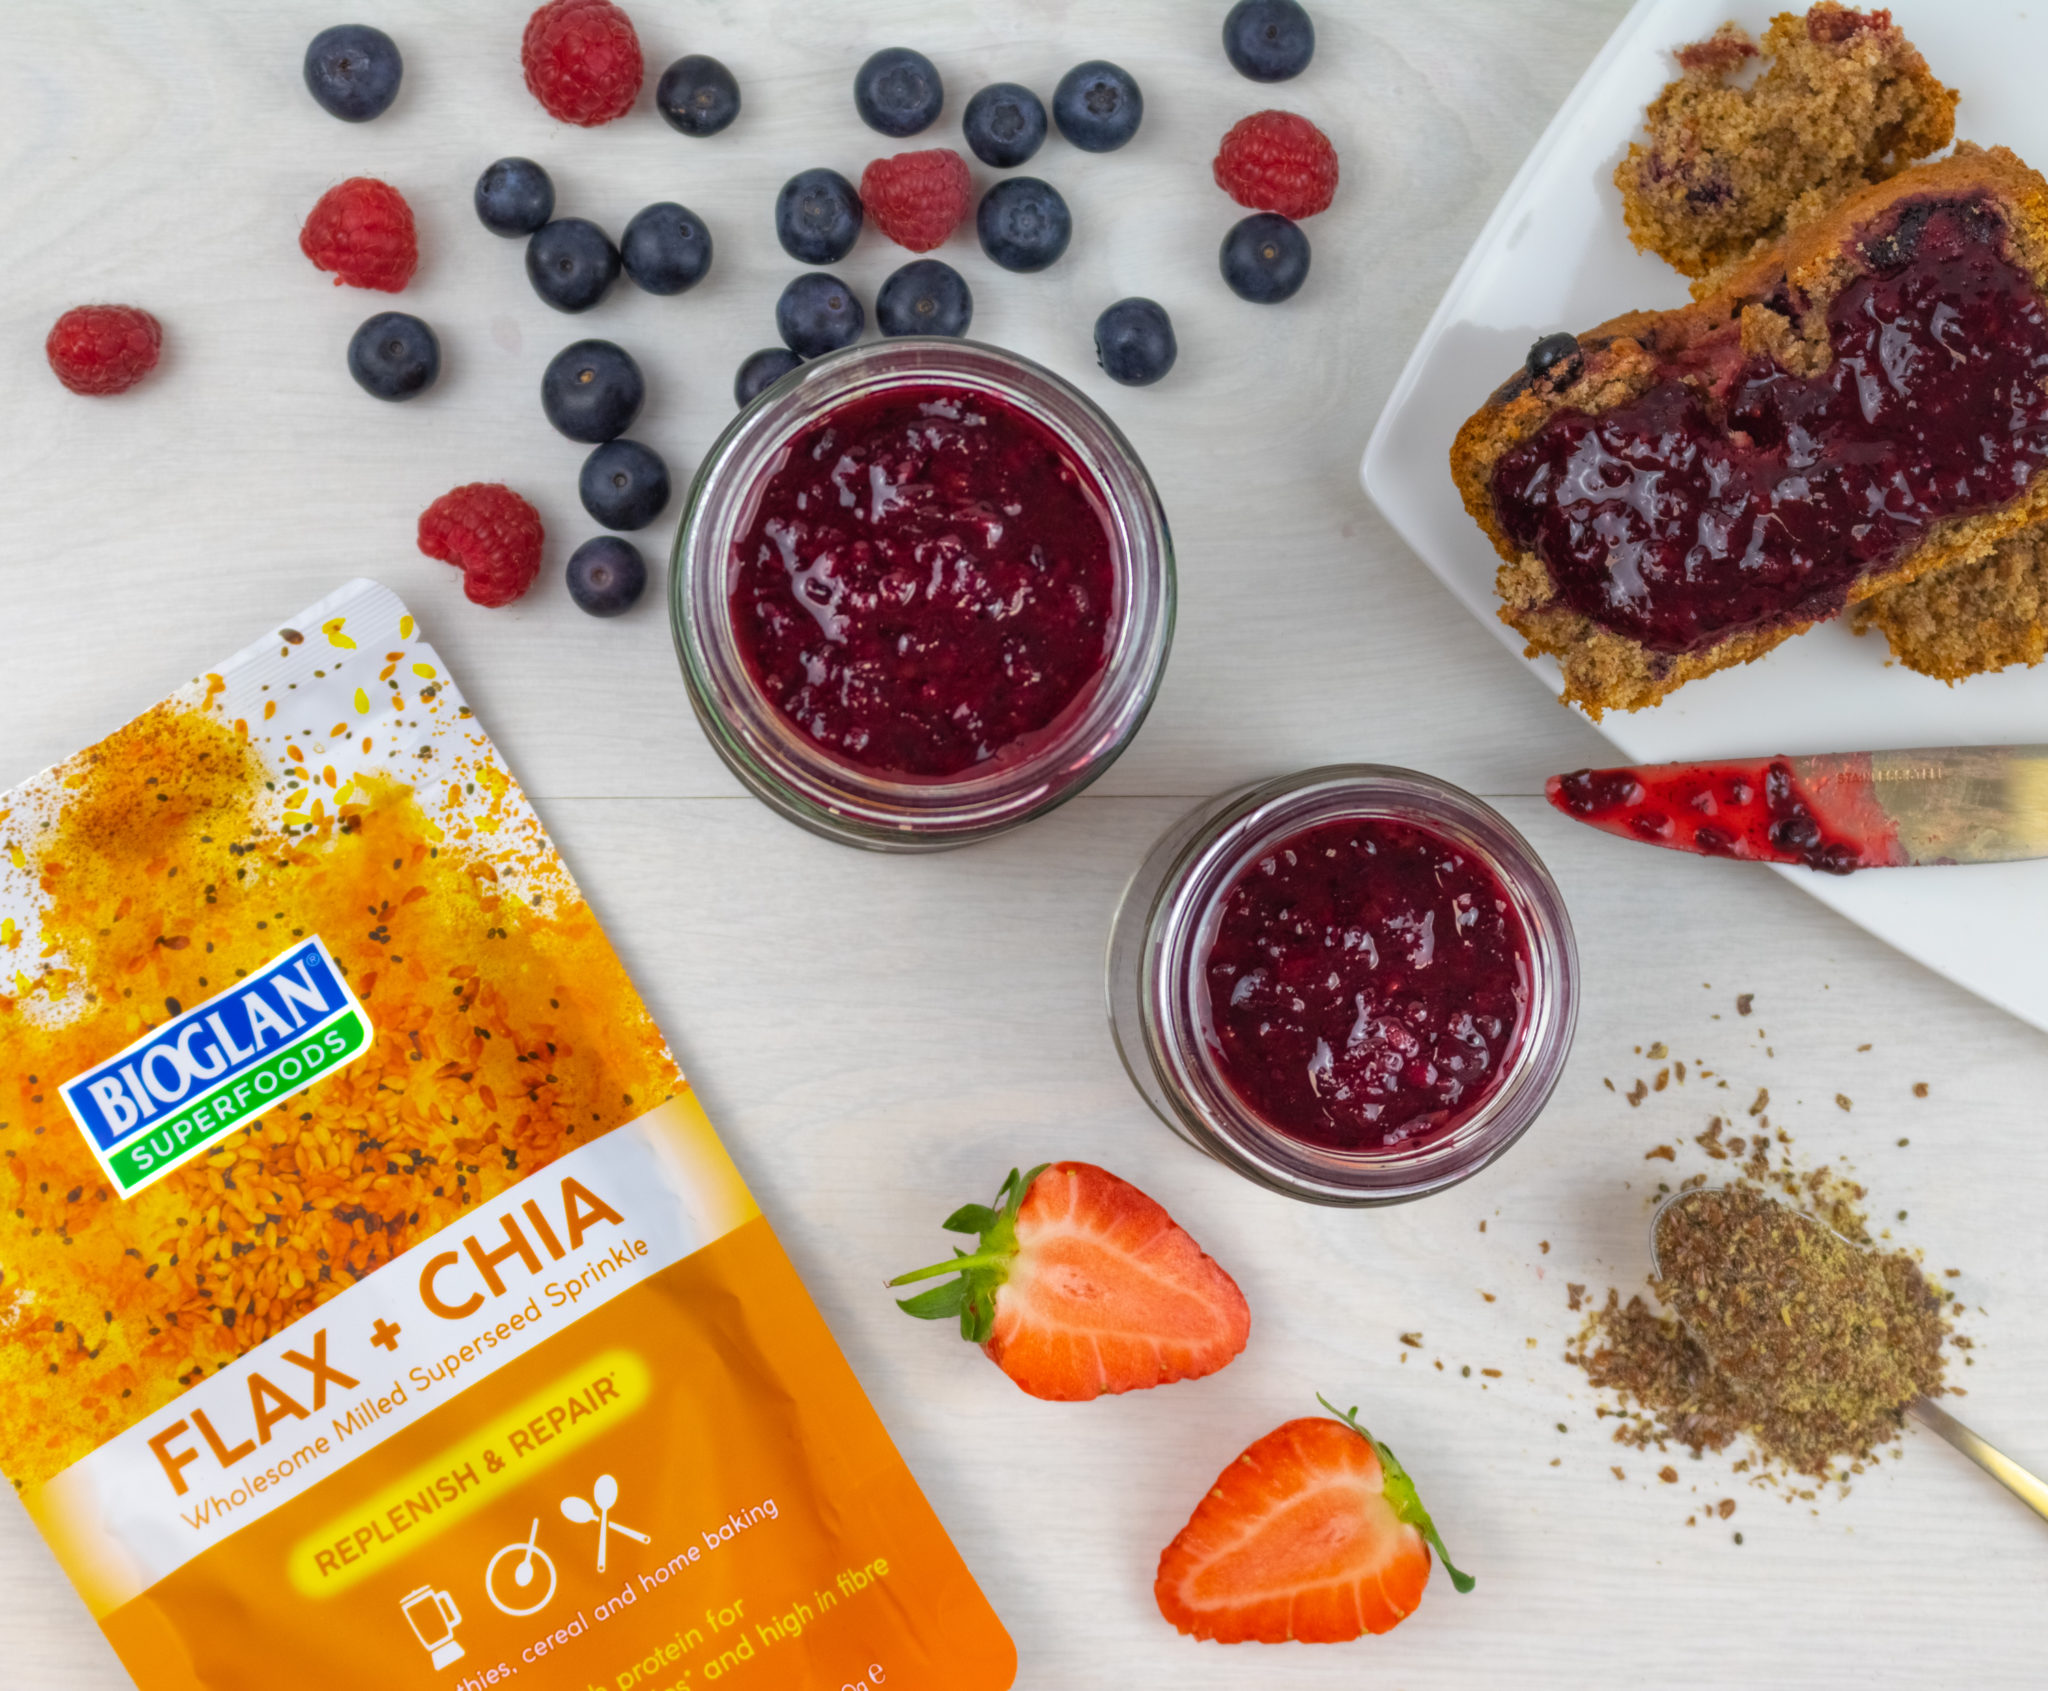 Flax & Chia Very Berry Jam